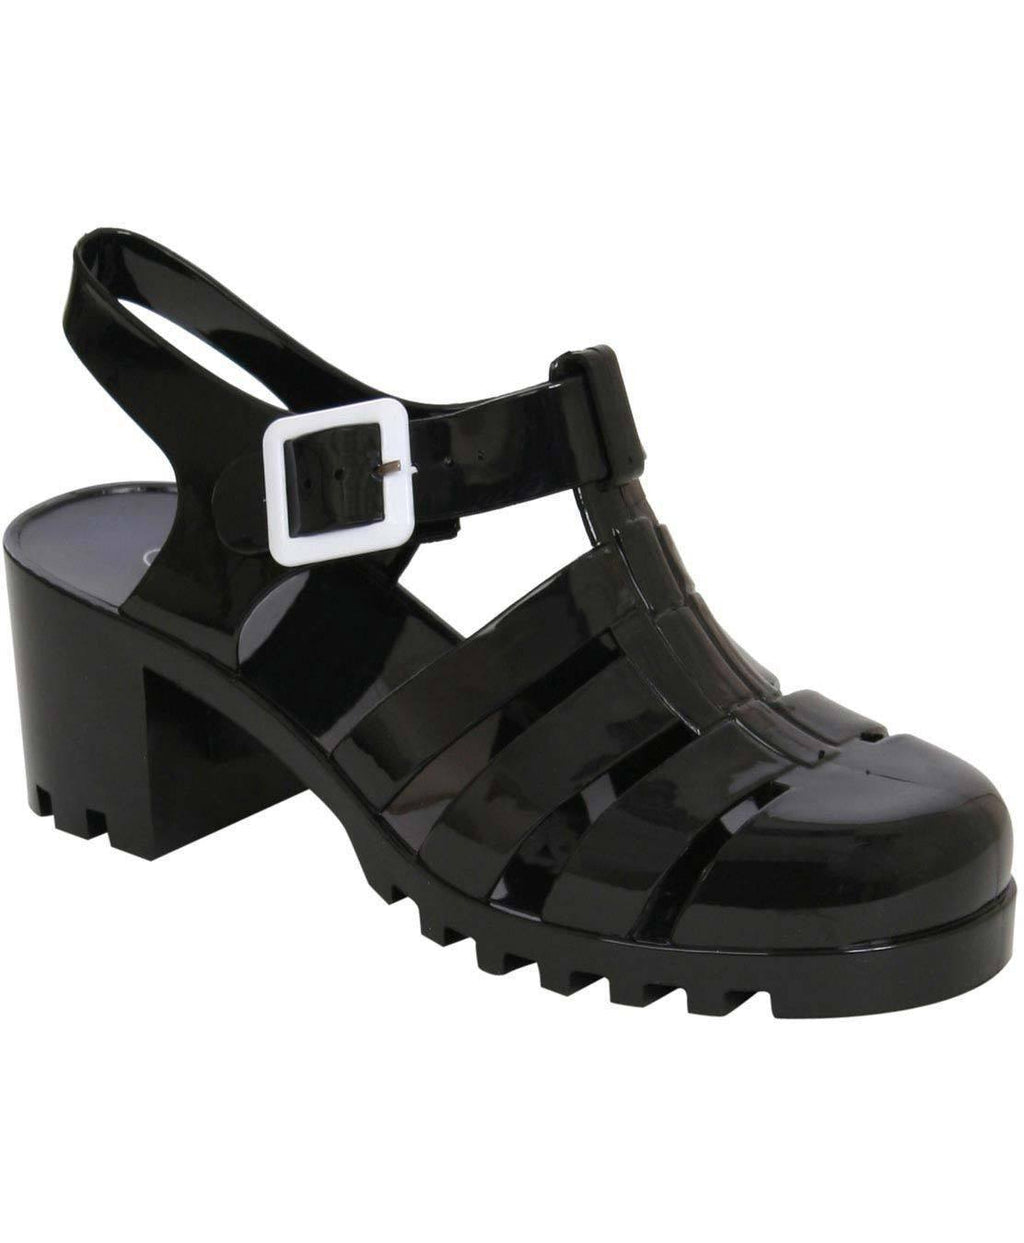 Carolina Block Heel Jelly Sandals in Black FRONT